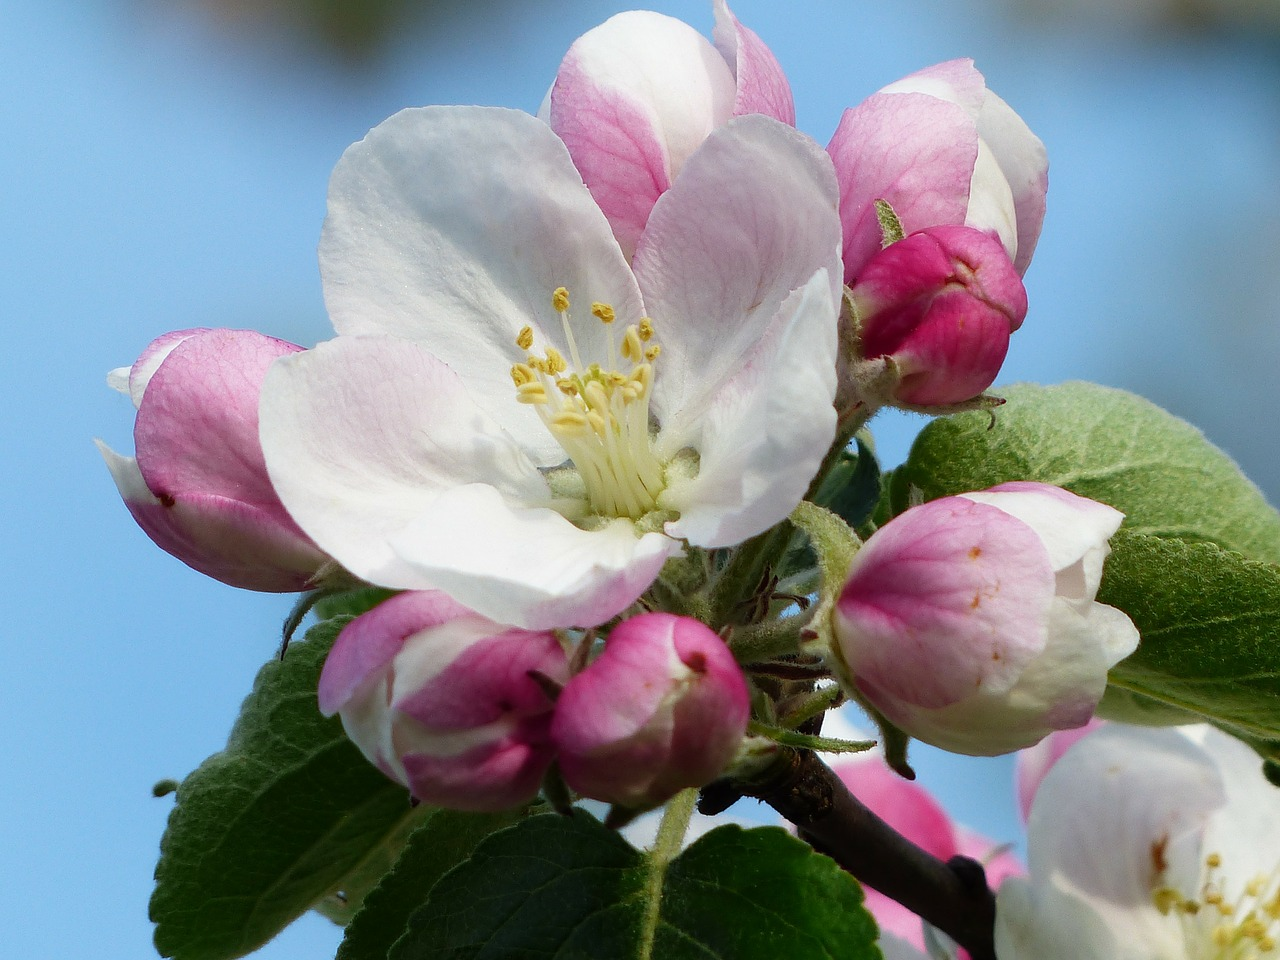 apple blossom,apple tree,blossom,bloom,white,pink,branch,leaves,malus,kernobstgewaechs,large,rose greenhouse,rosaceae,apple tree blossom,spring,apple,nature,free pictures, free photos, free images, royalty free, free illustrations, public domain